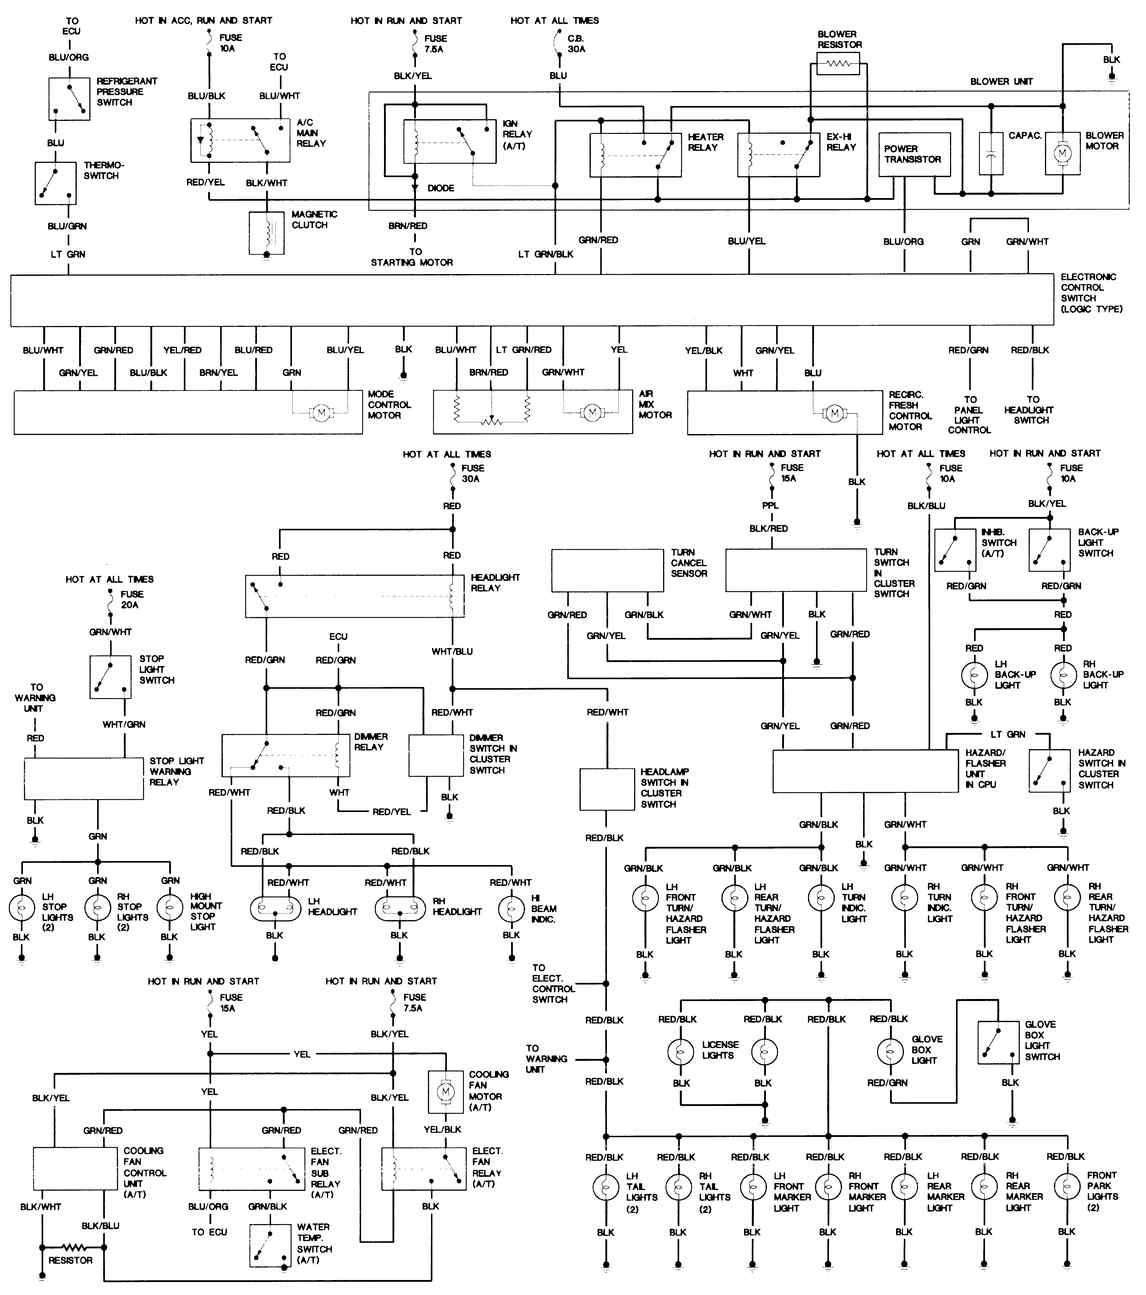 Wiring Diagram Of Mazda 323 - All Wiring Diagram on mazda miata radio wiring, mazda engine, mazda b2200 gauge cluster diagram, mazda wiring color codes, mazda cooling system, mazda alternator wiring, mazda battery, mazda 3 relay diagram, mazda exhaust, mazda fuses, mazda accessories, mazda manual transmission, mazda brakes, mazda parts,